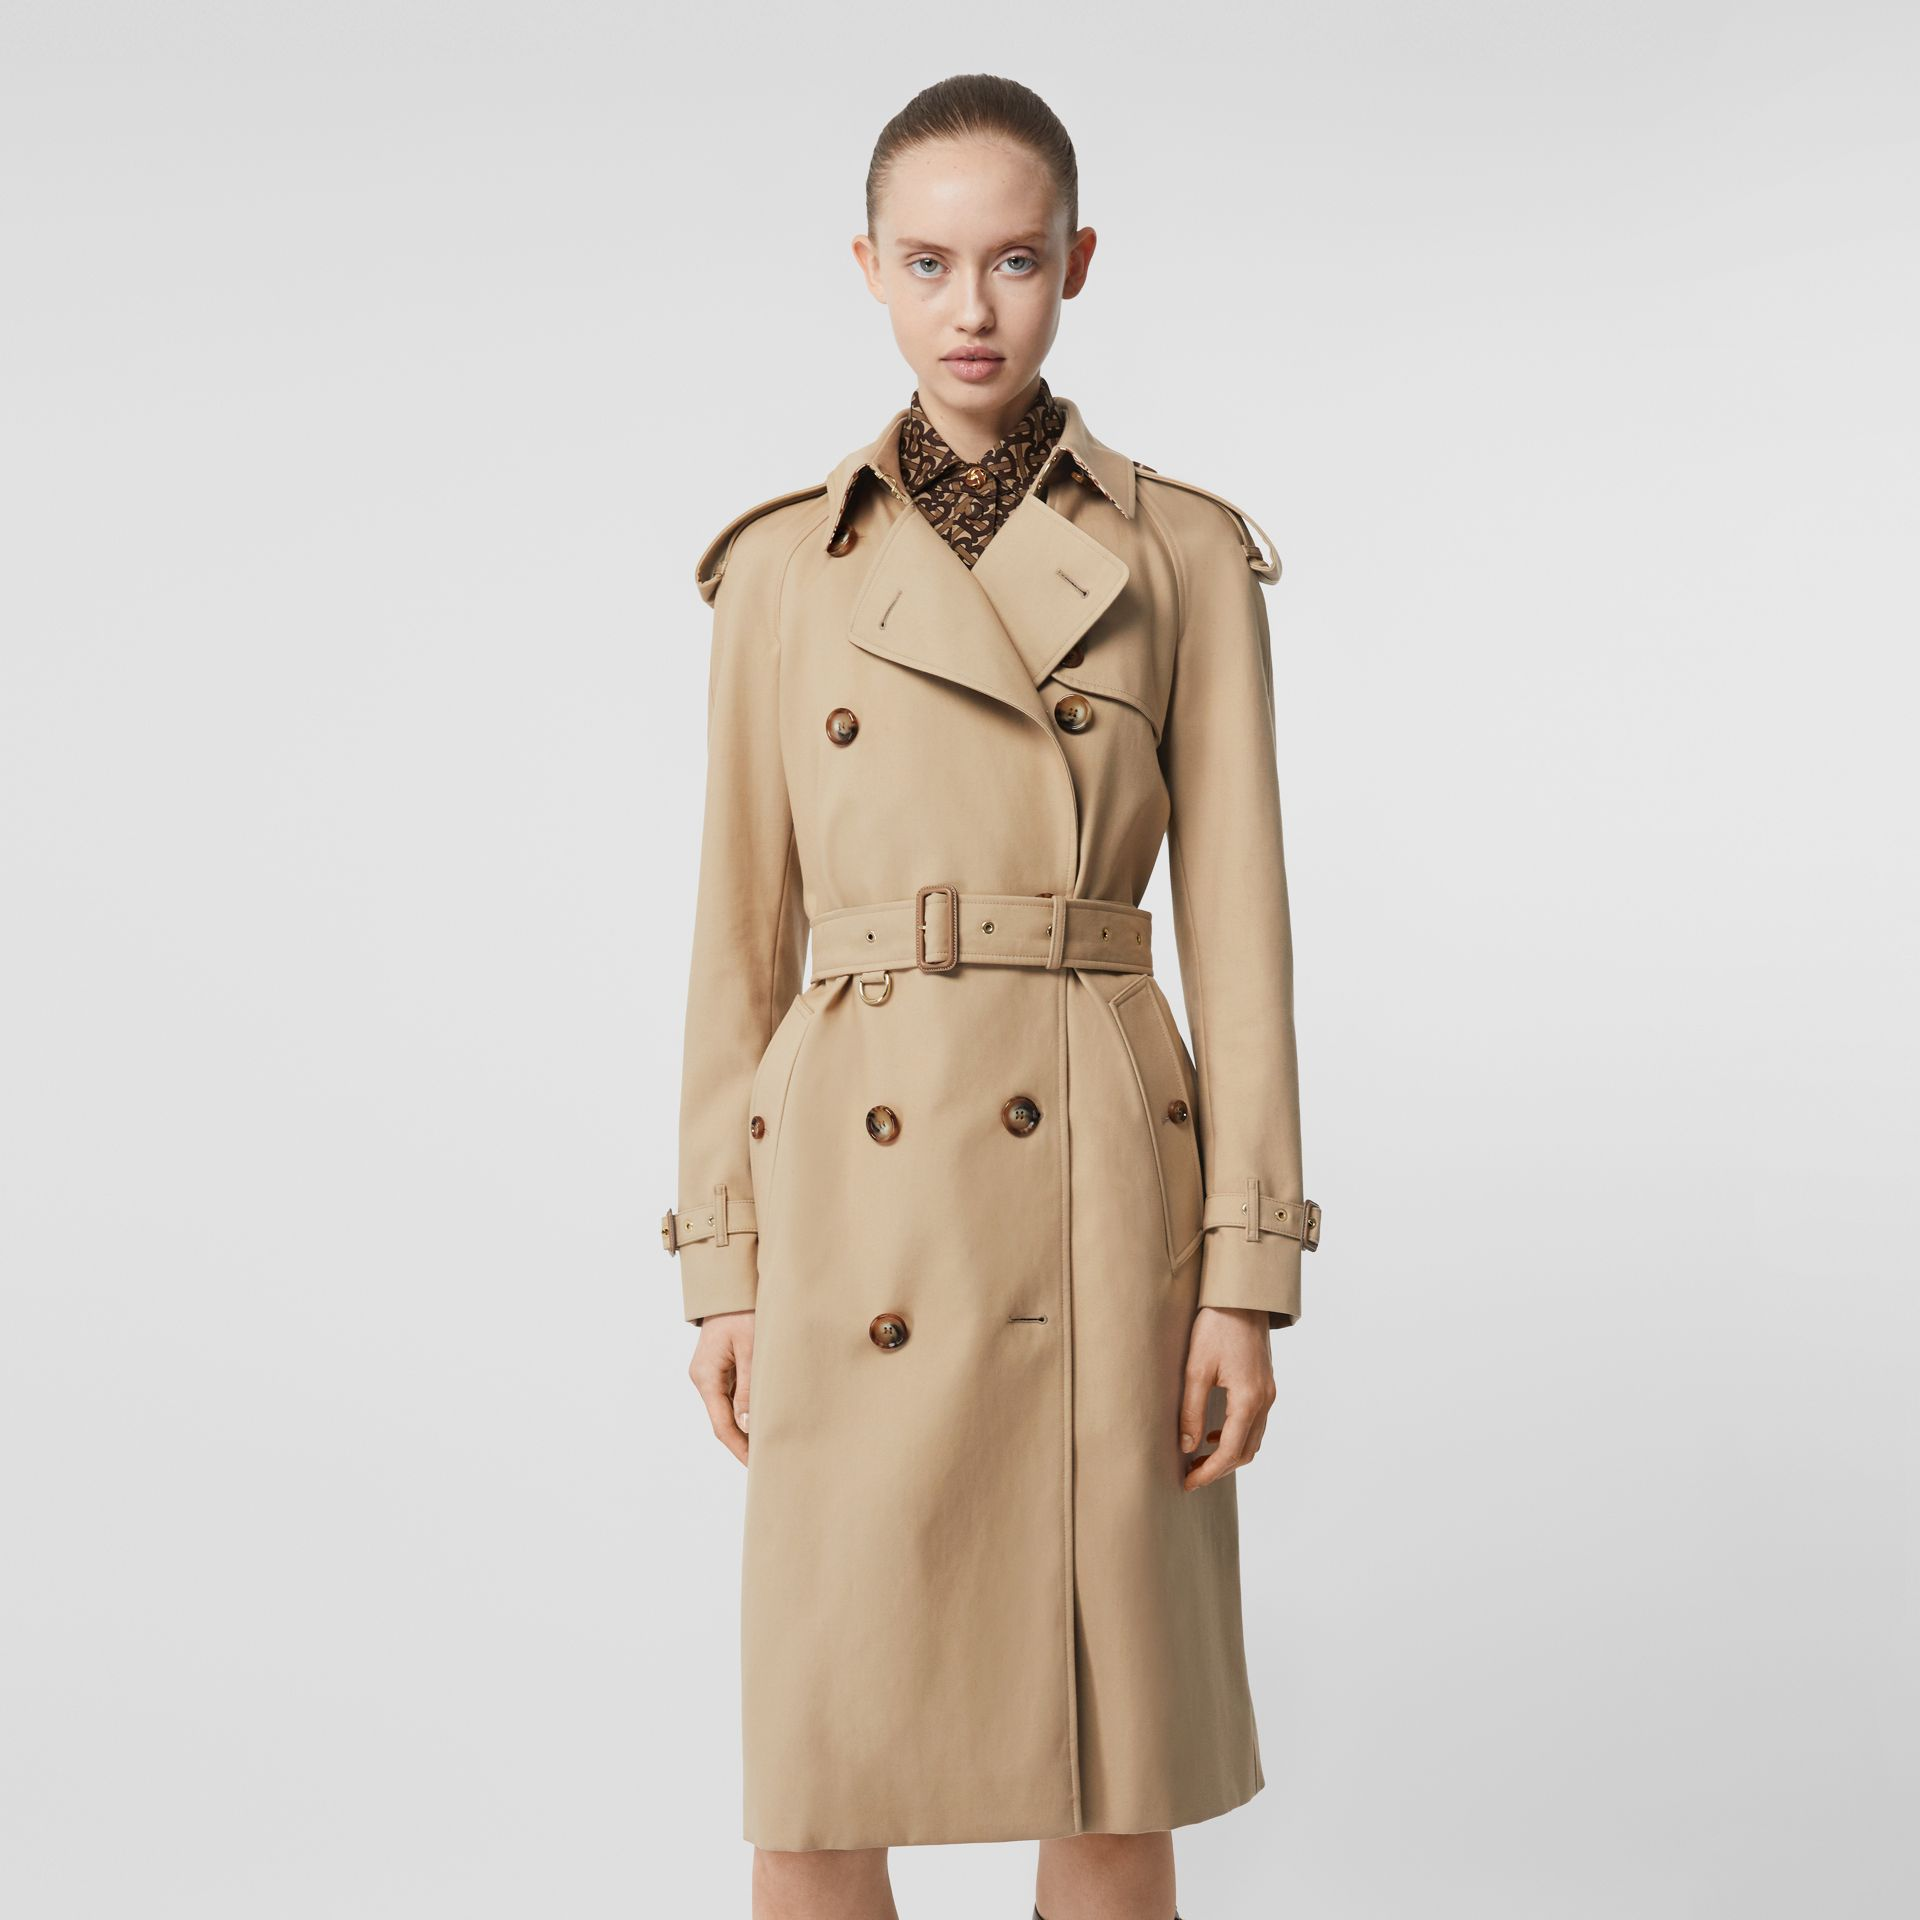 Archive Print-lined Cotton Gabardine Trench Coat in Honey - Women | Burberry United Kingdom - gallery image 6